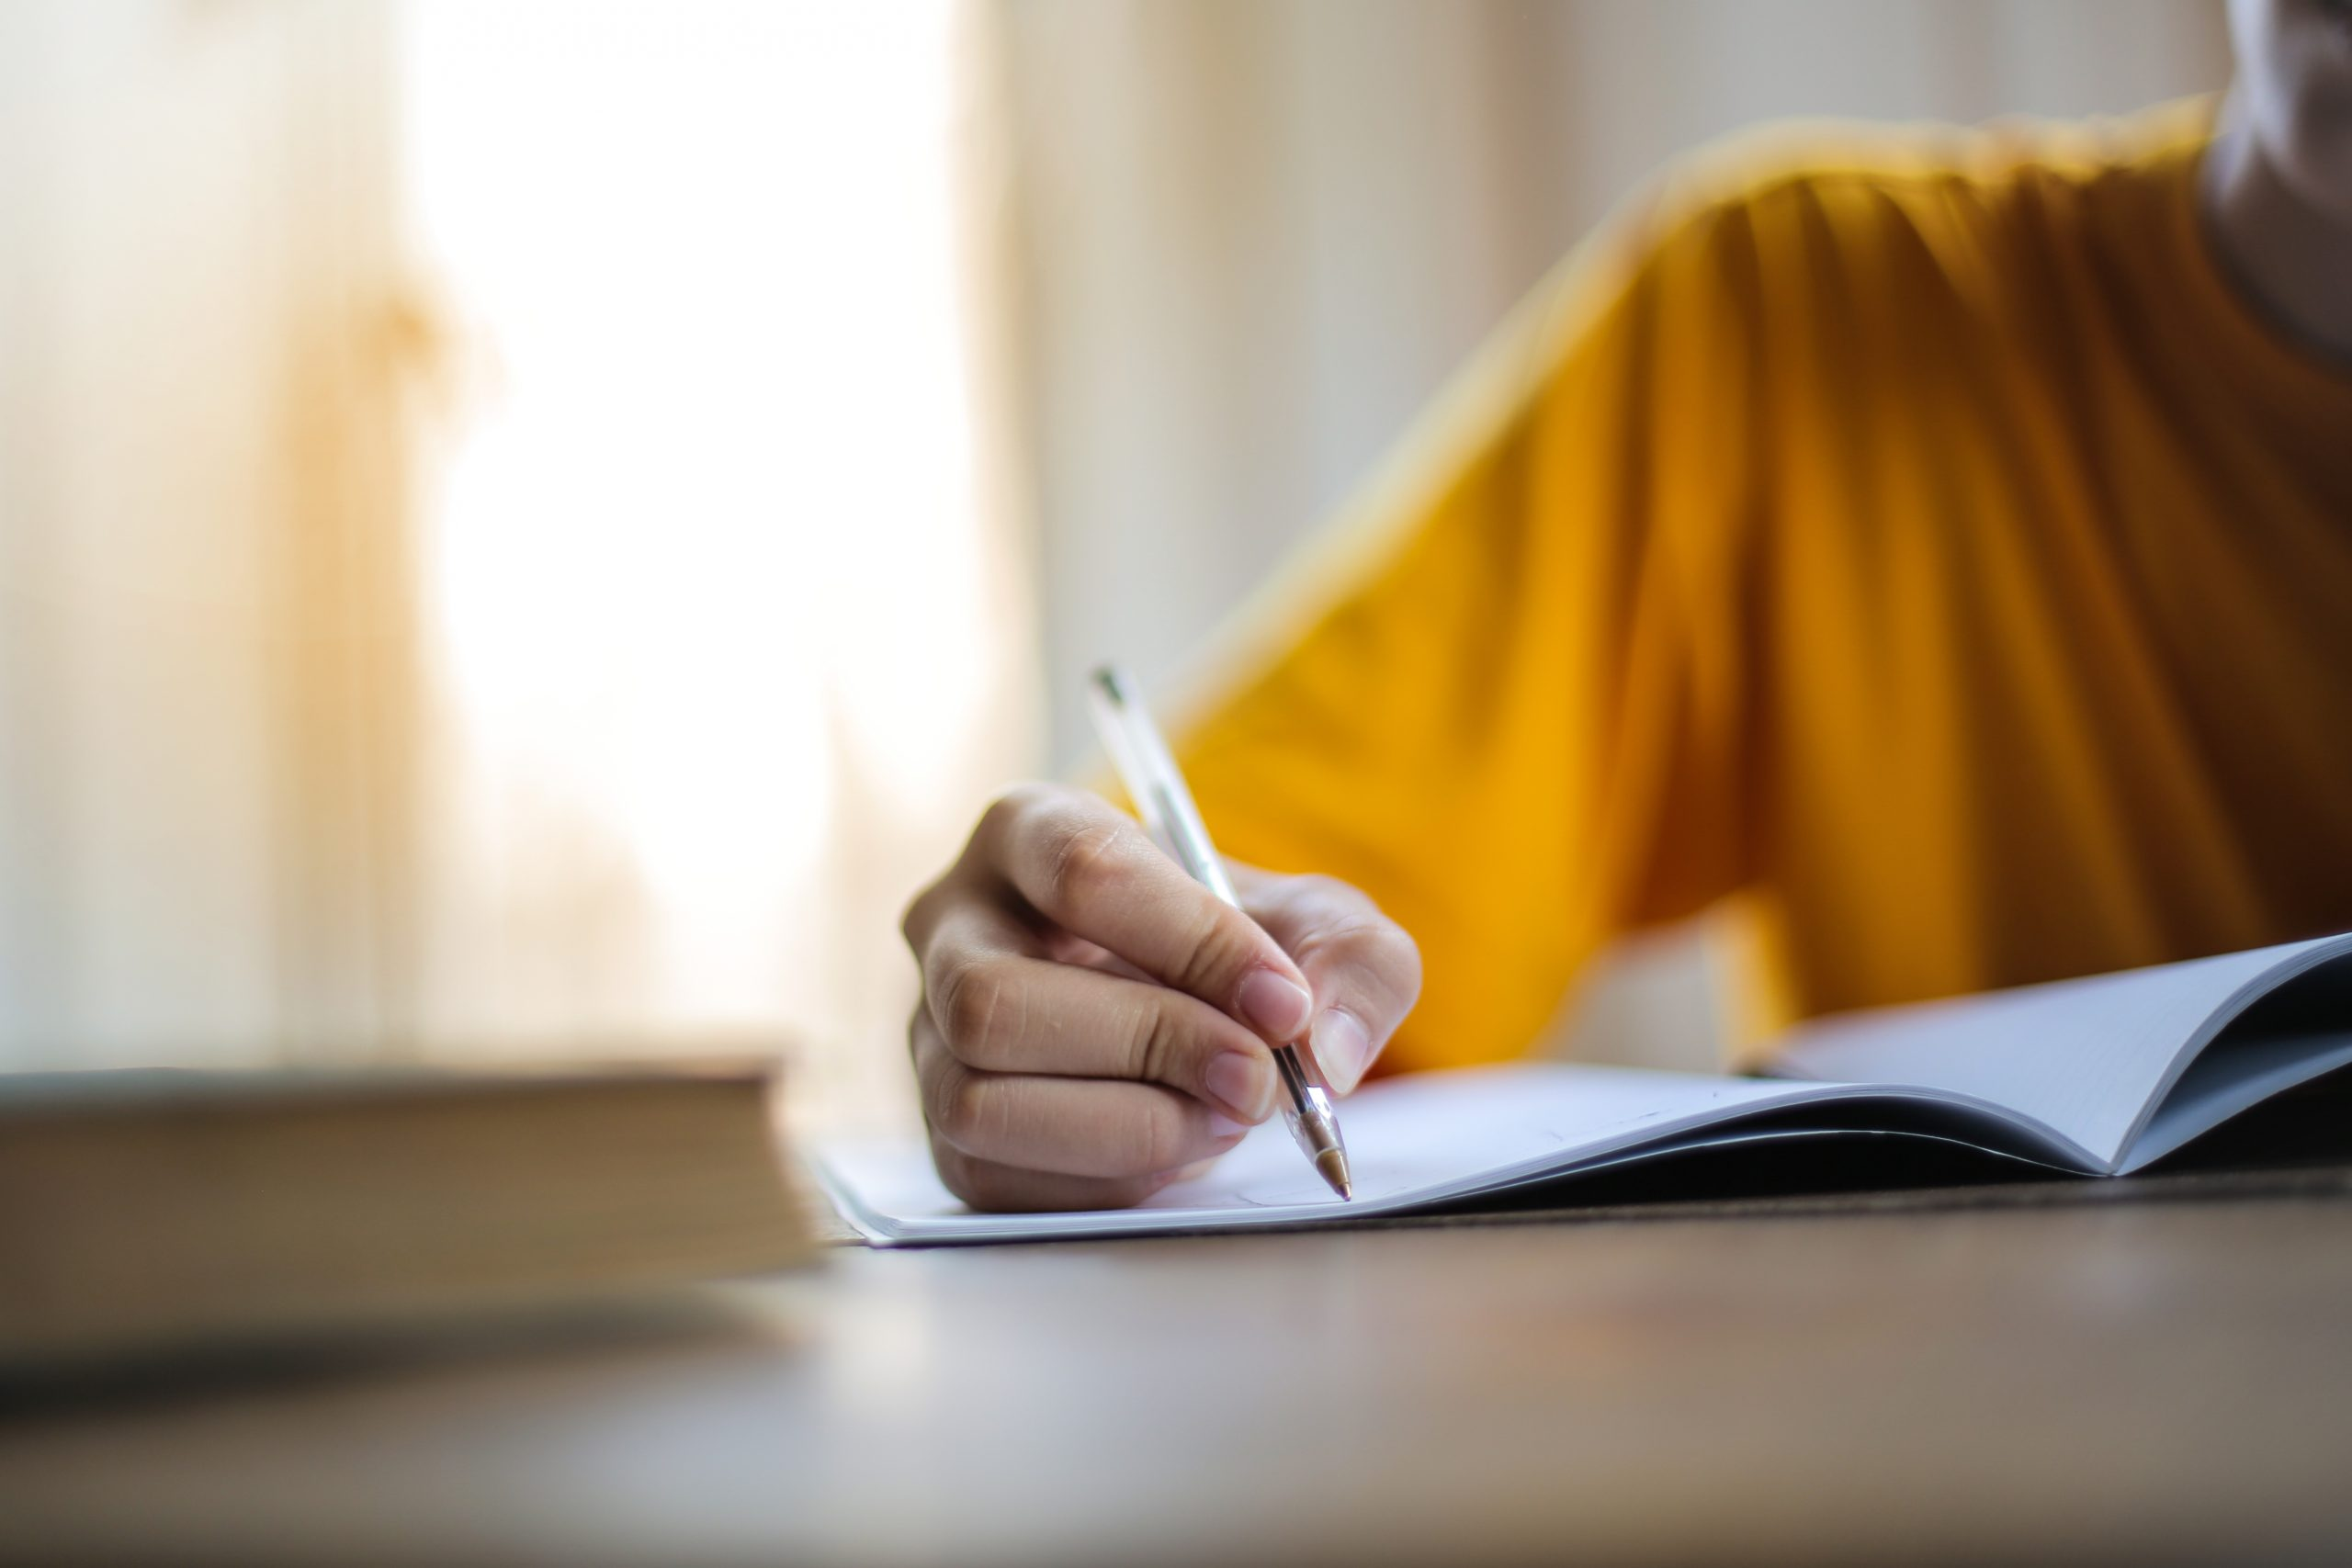 Selective focus photo of person writing